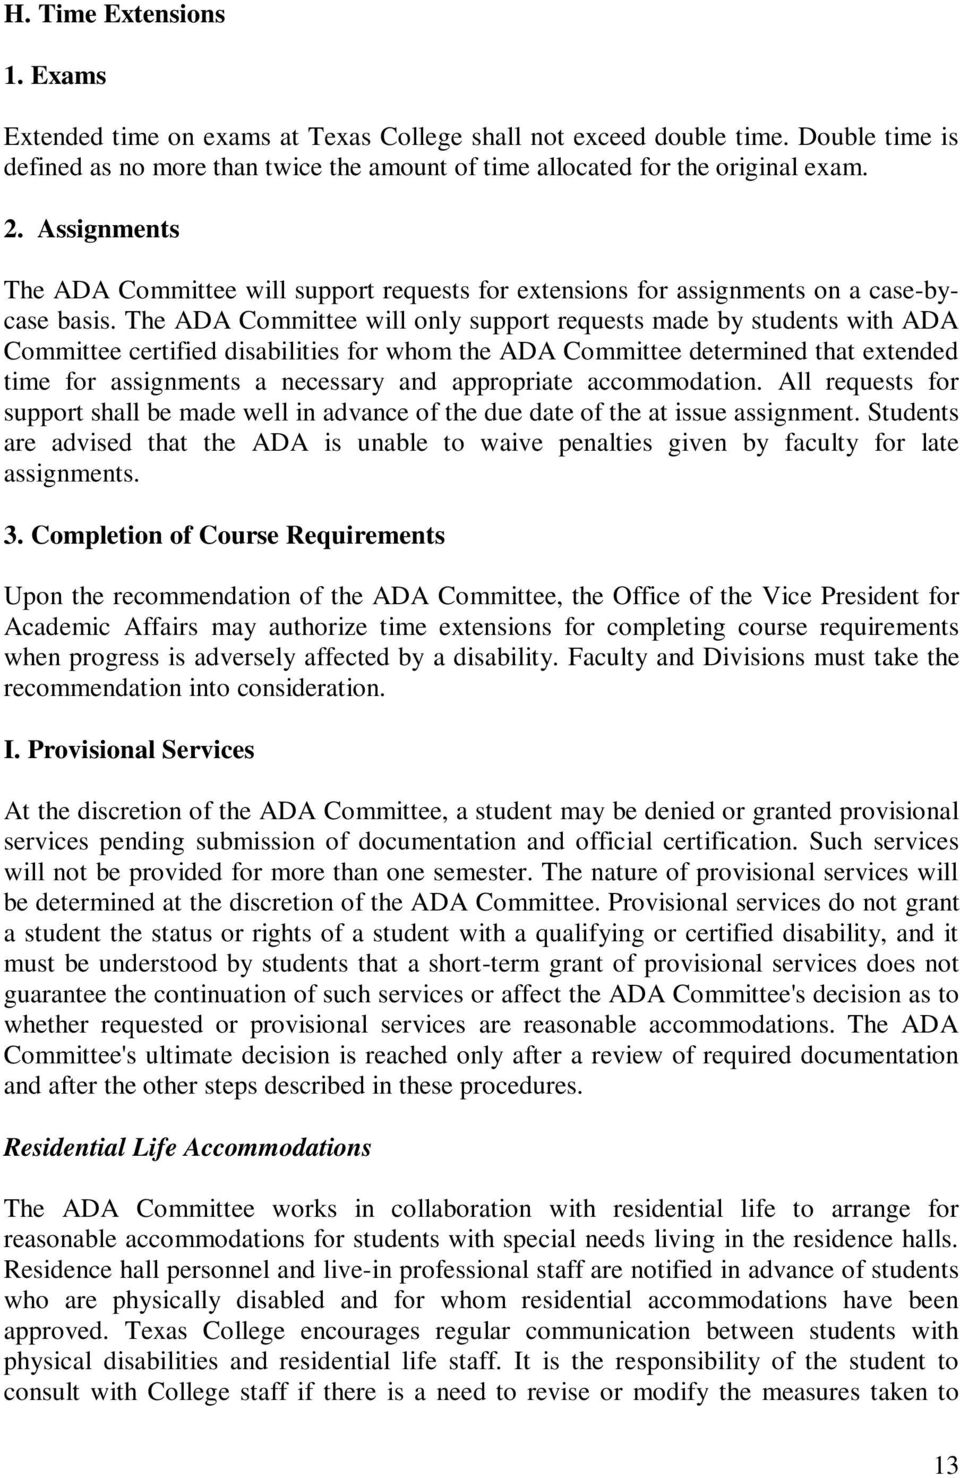 The ADA Committee will only support requests made by students with ADA Committee certified disabilities for whom the ADA Committee determined that extended time for assignments a necessary and